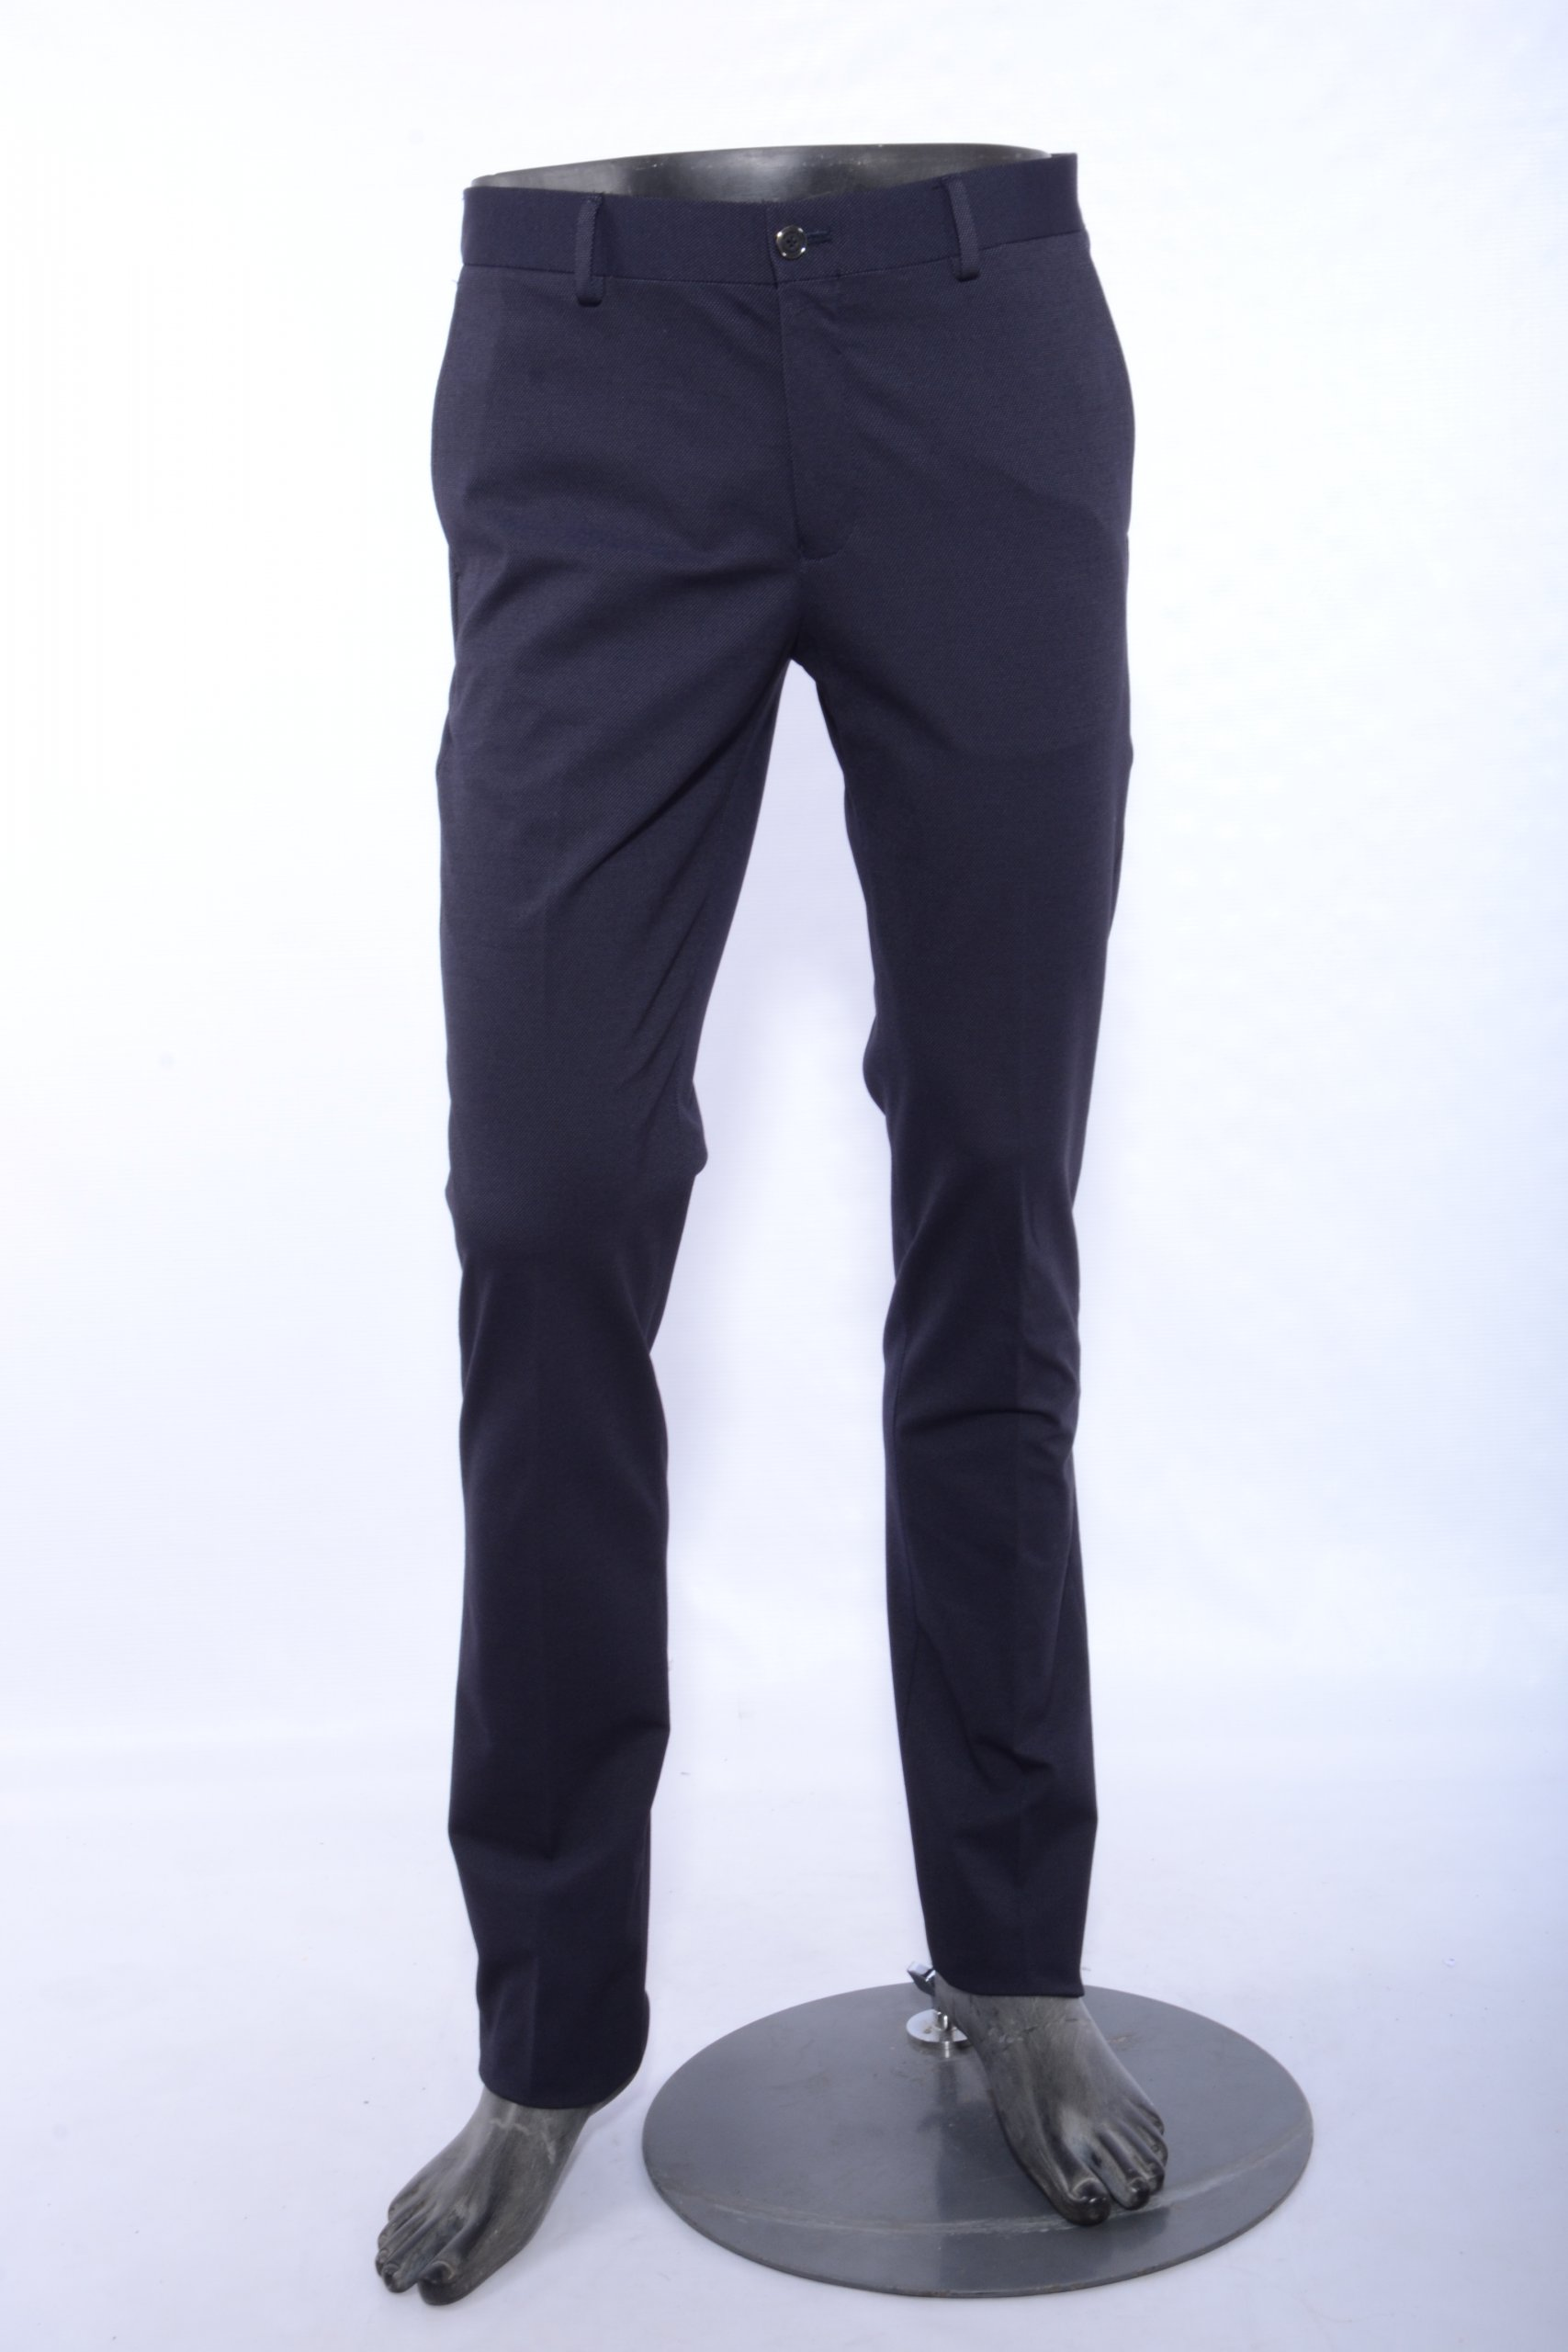 Navy Coloured Trouser by Black Berry